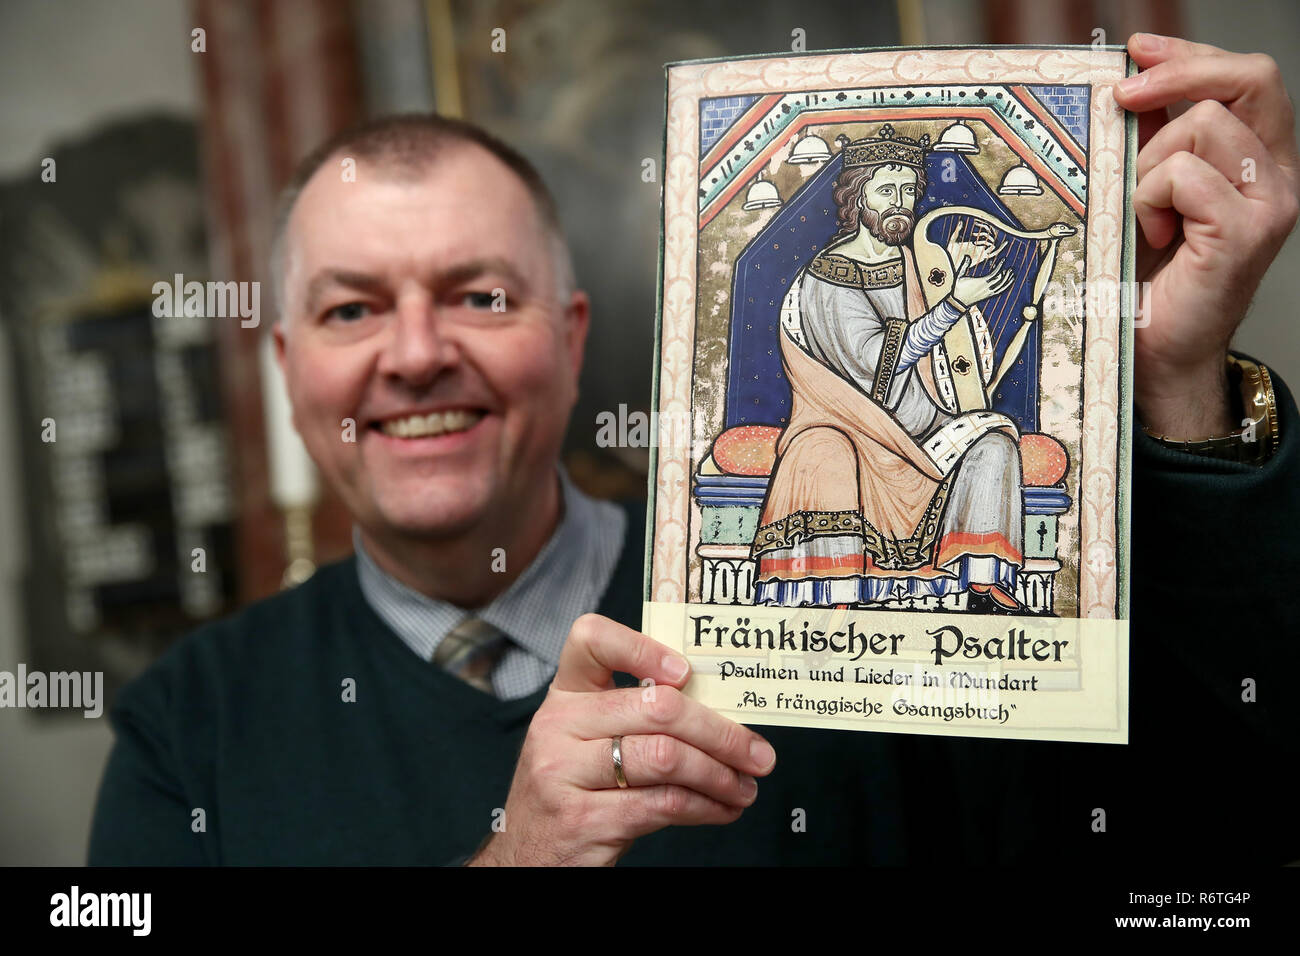 """Lichtenau, Germany. 06th Dec, 2018. Pastor Claus Ebeling holds the church dialect hymnbook """"Fränkischer Psalter - Psalmen und Lieder in Mundart - As fränggische Gsangsbuch"""" in his hands in the Trinity Church. The special hymnbook for Franconia contains not only the Franconian """"Our Father"""", but a total of 23 biblical psalms and 44 songs on 80 pages. Including dialect versions of well-known Christmas songs. (to dpa-Korr: """"Vadder unser - Franken gets church dialect songbook"""" from 07.12.2018) Credit: Daniel Karmann/dpa/Alamy Live News Stock Photo"""